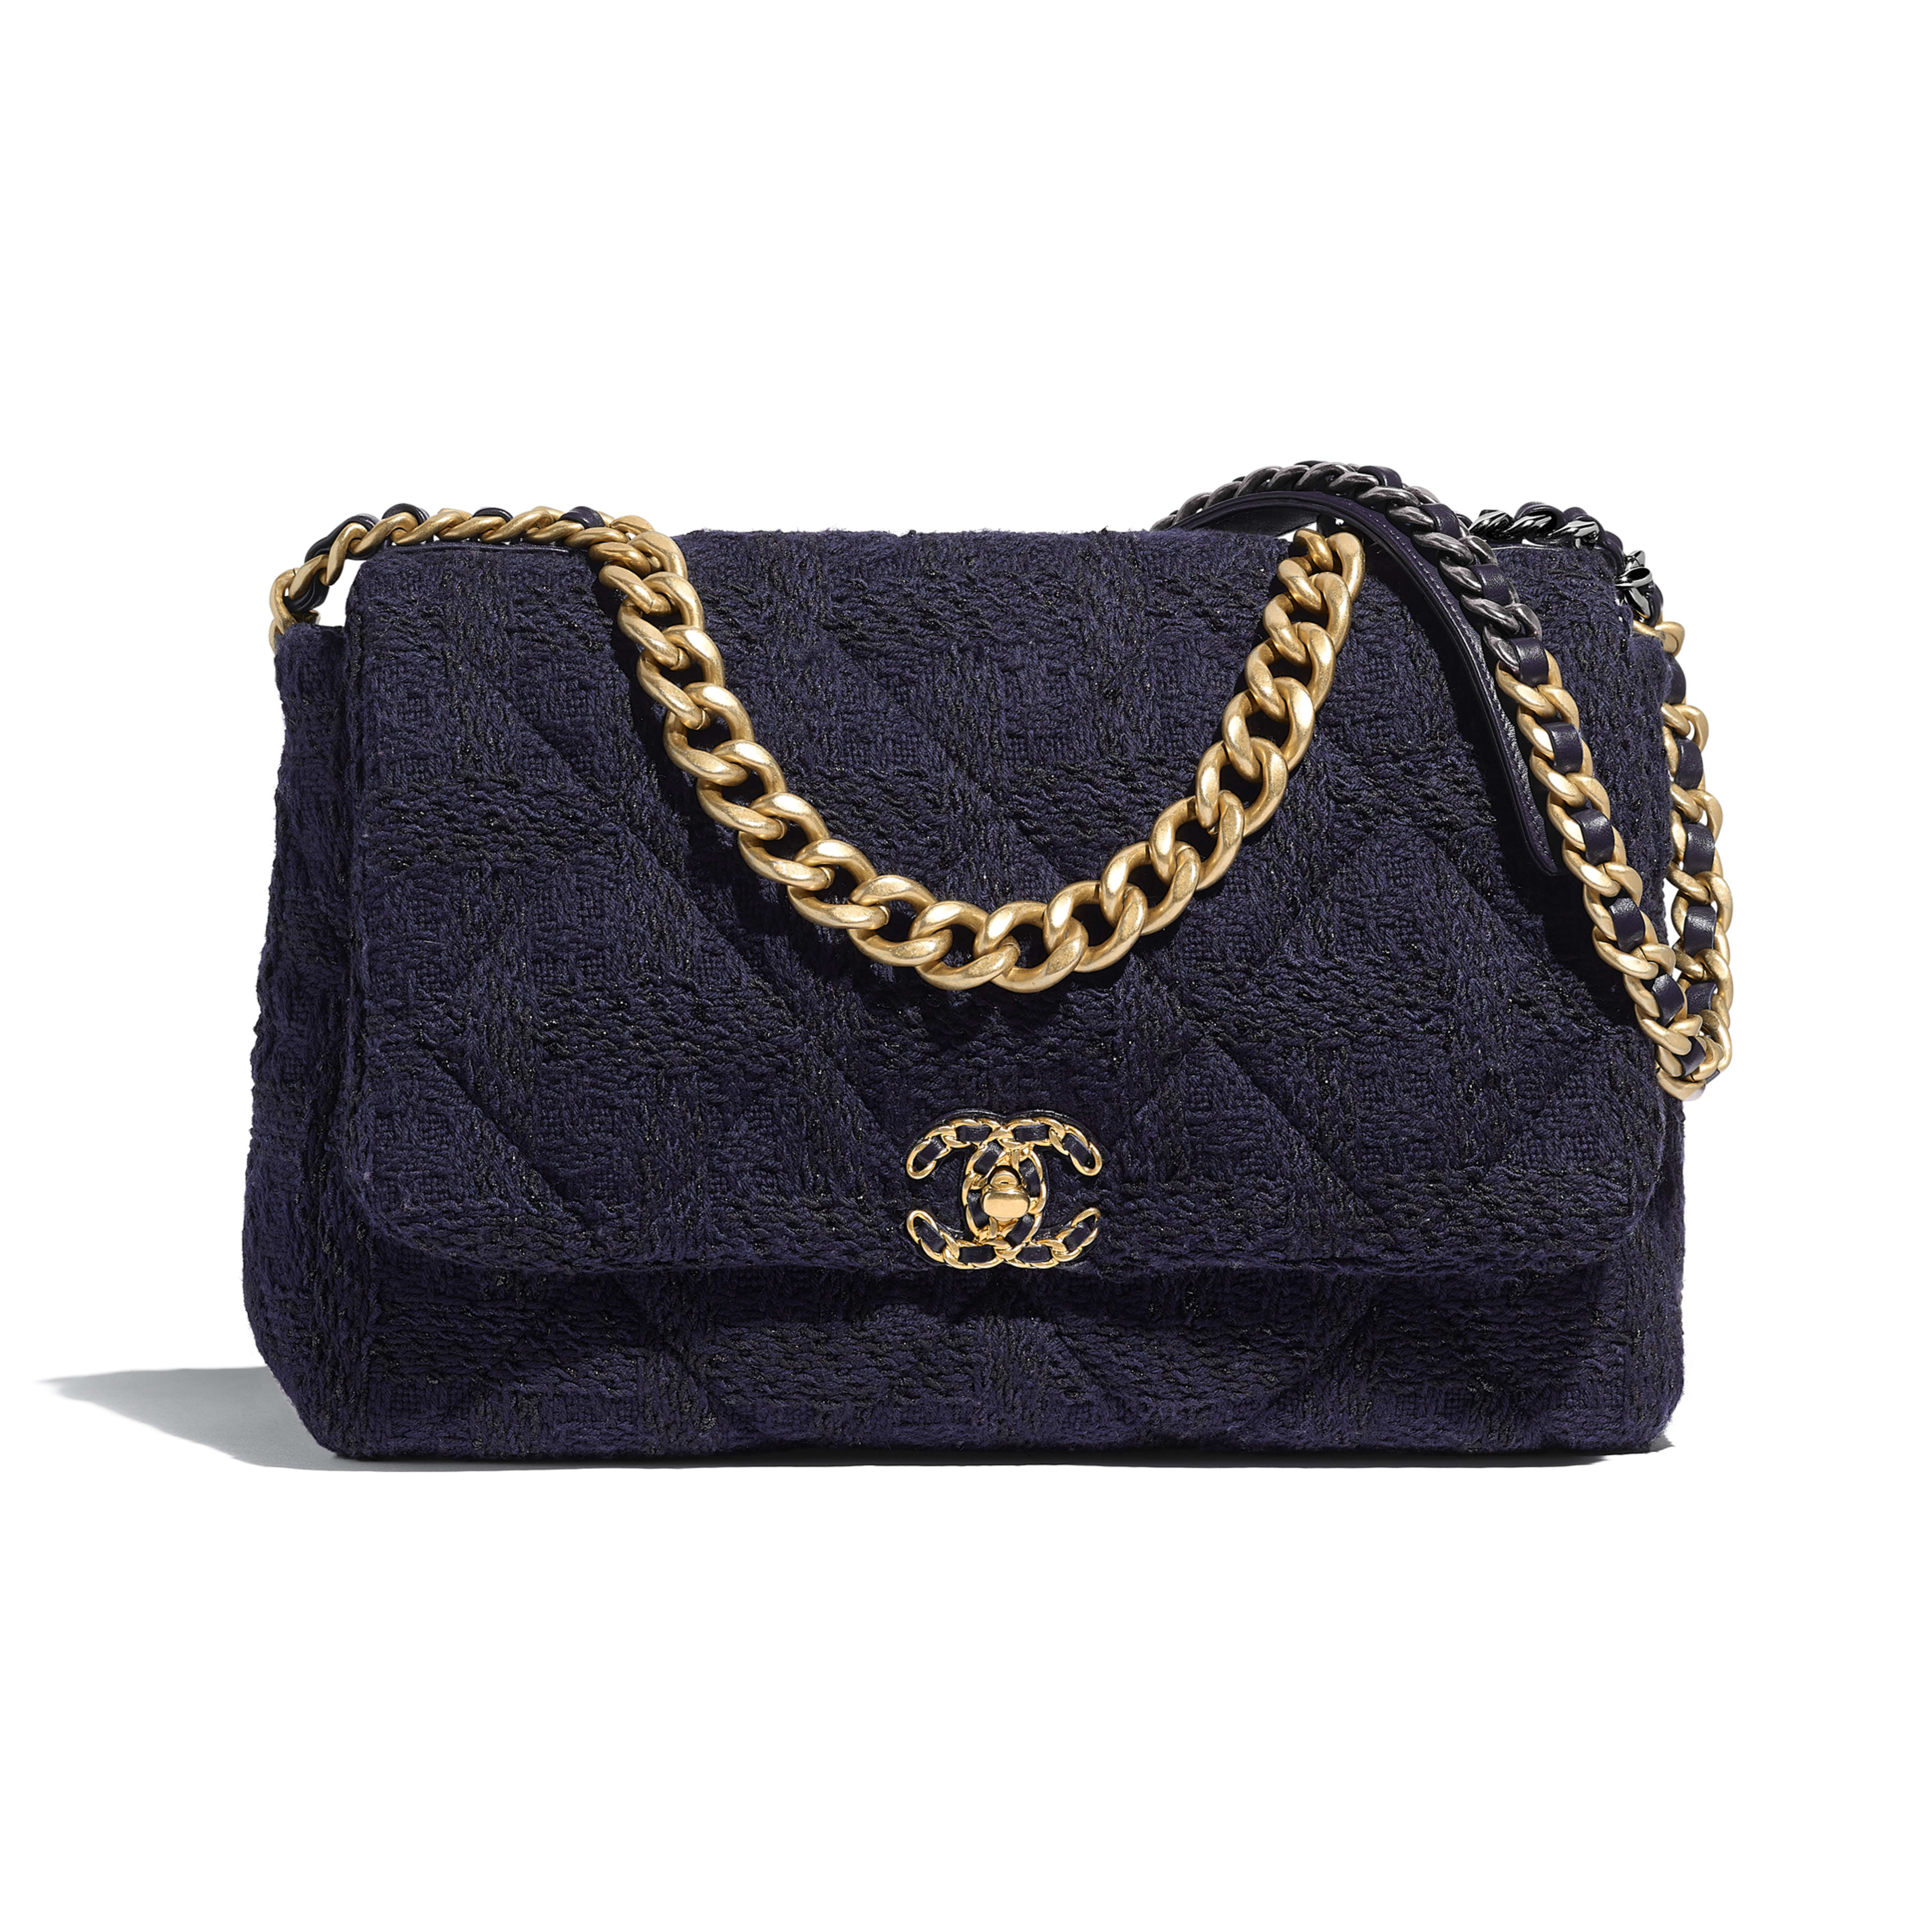 CHANEL 19 Maxi Flap Bag - Navy Blue & Black - Wool Tweed, Gold-Tone, Silver-Tone & Ruthenium-Finish Metal - Default view - see full sized version